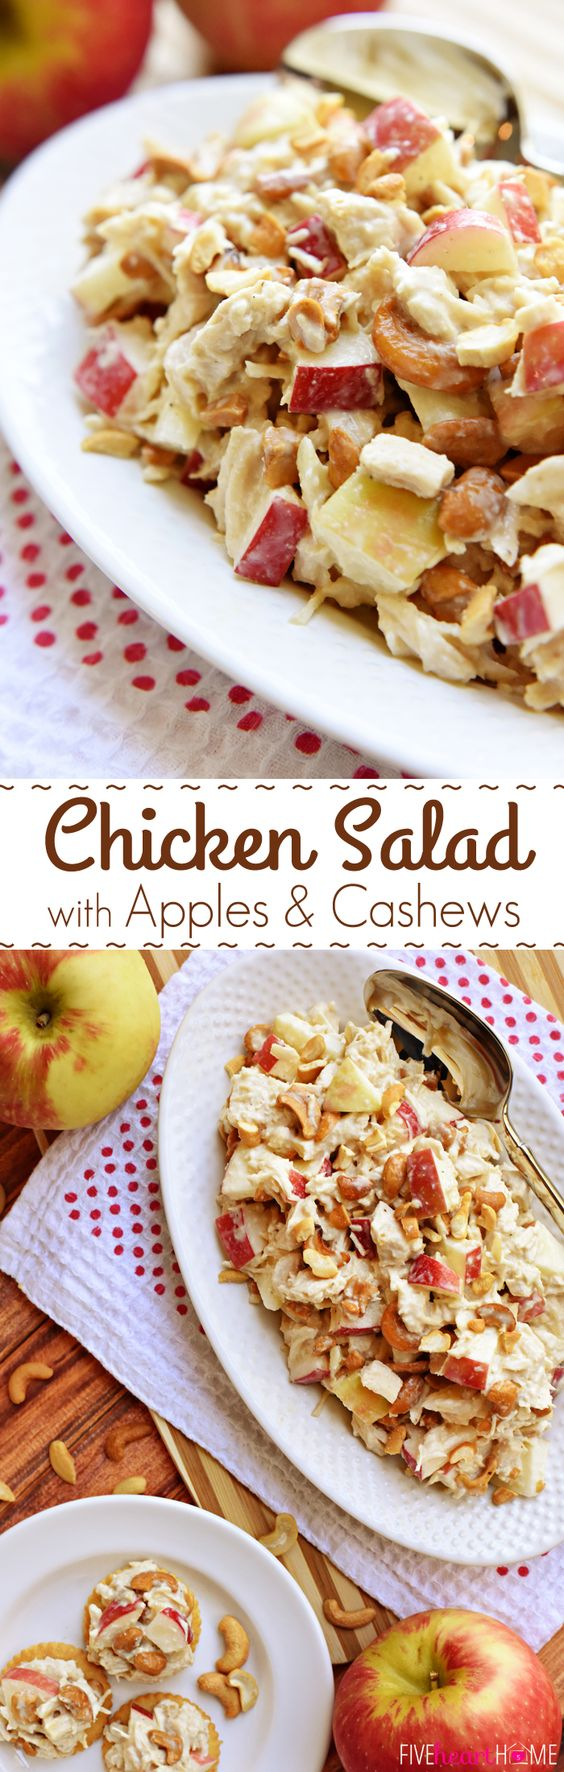 Chicken Salad with Apples and Cashews ~ a honey-kissed autumn spin on classic Sonoma Chicken Salad | FiveHeartHome.com